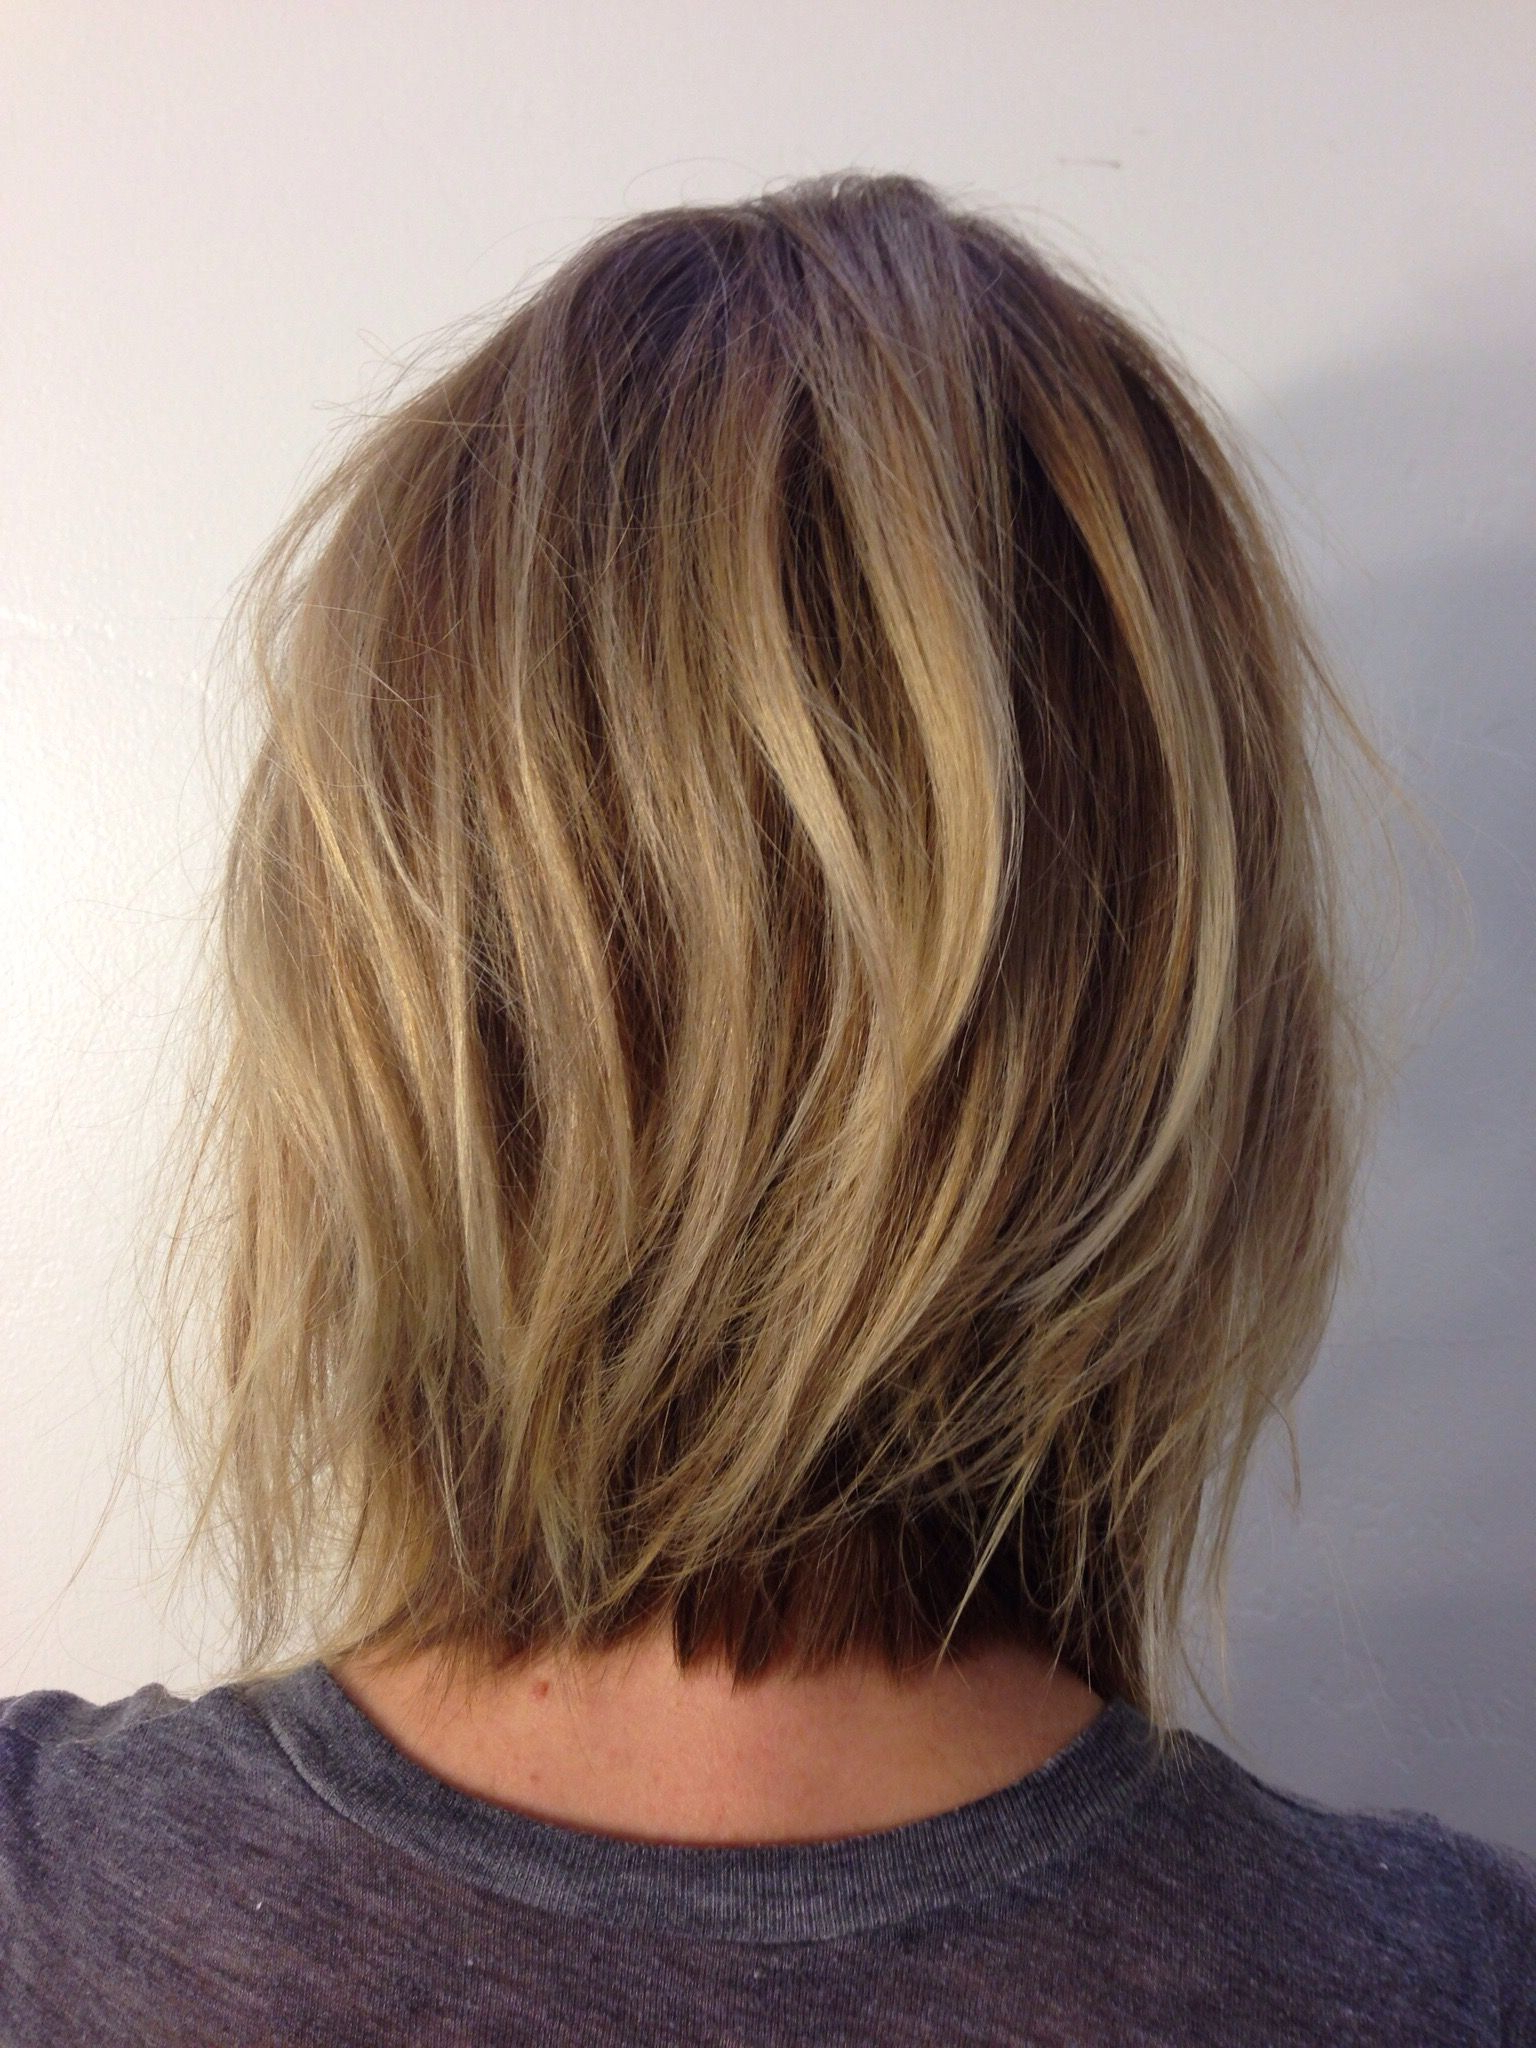 Andreamillerhair  Neck Length Layers … | Hair Cut In 2018… With Regard To Nape Length Wavy Ash Brown Bob Hairstyles (Gallery 4 of 25)